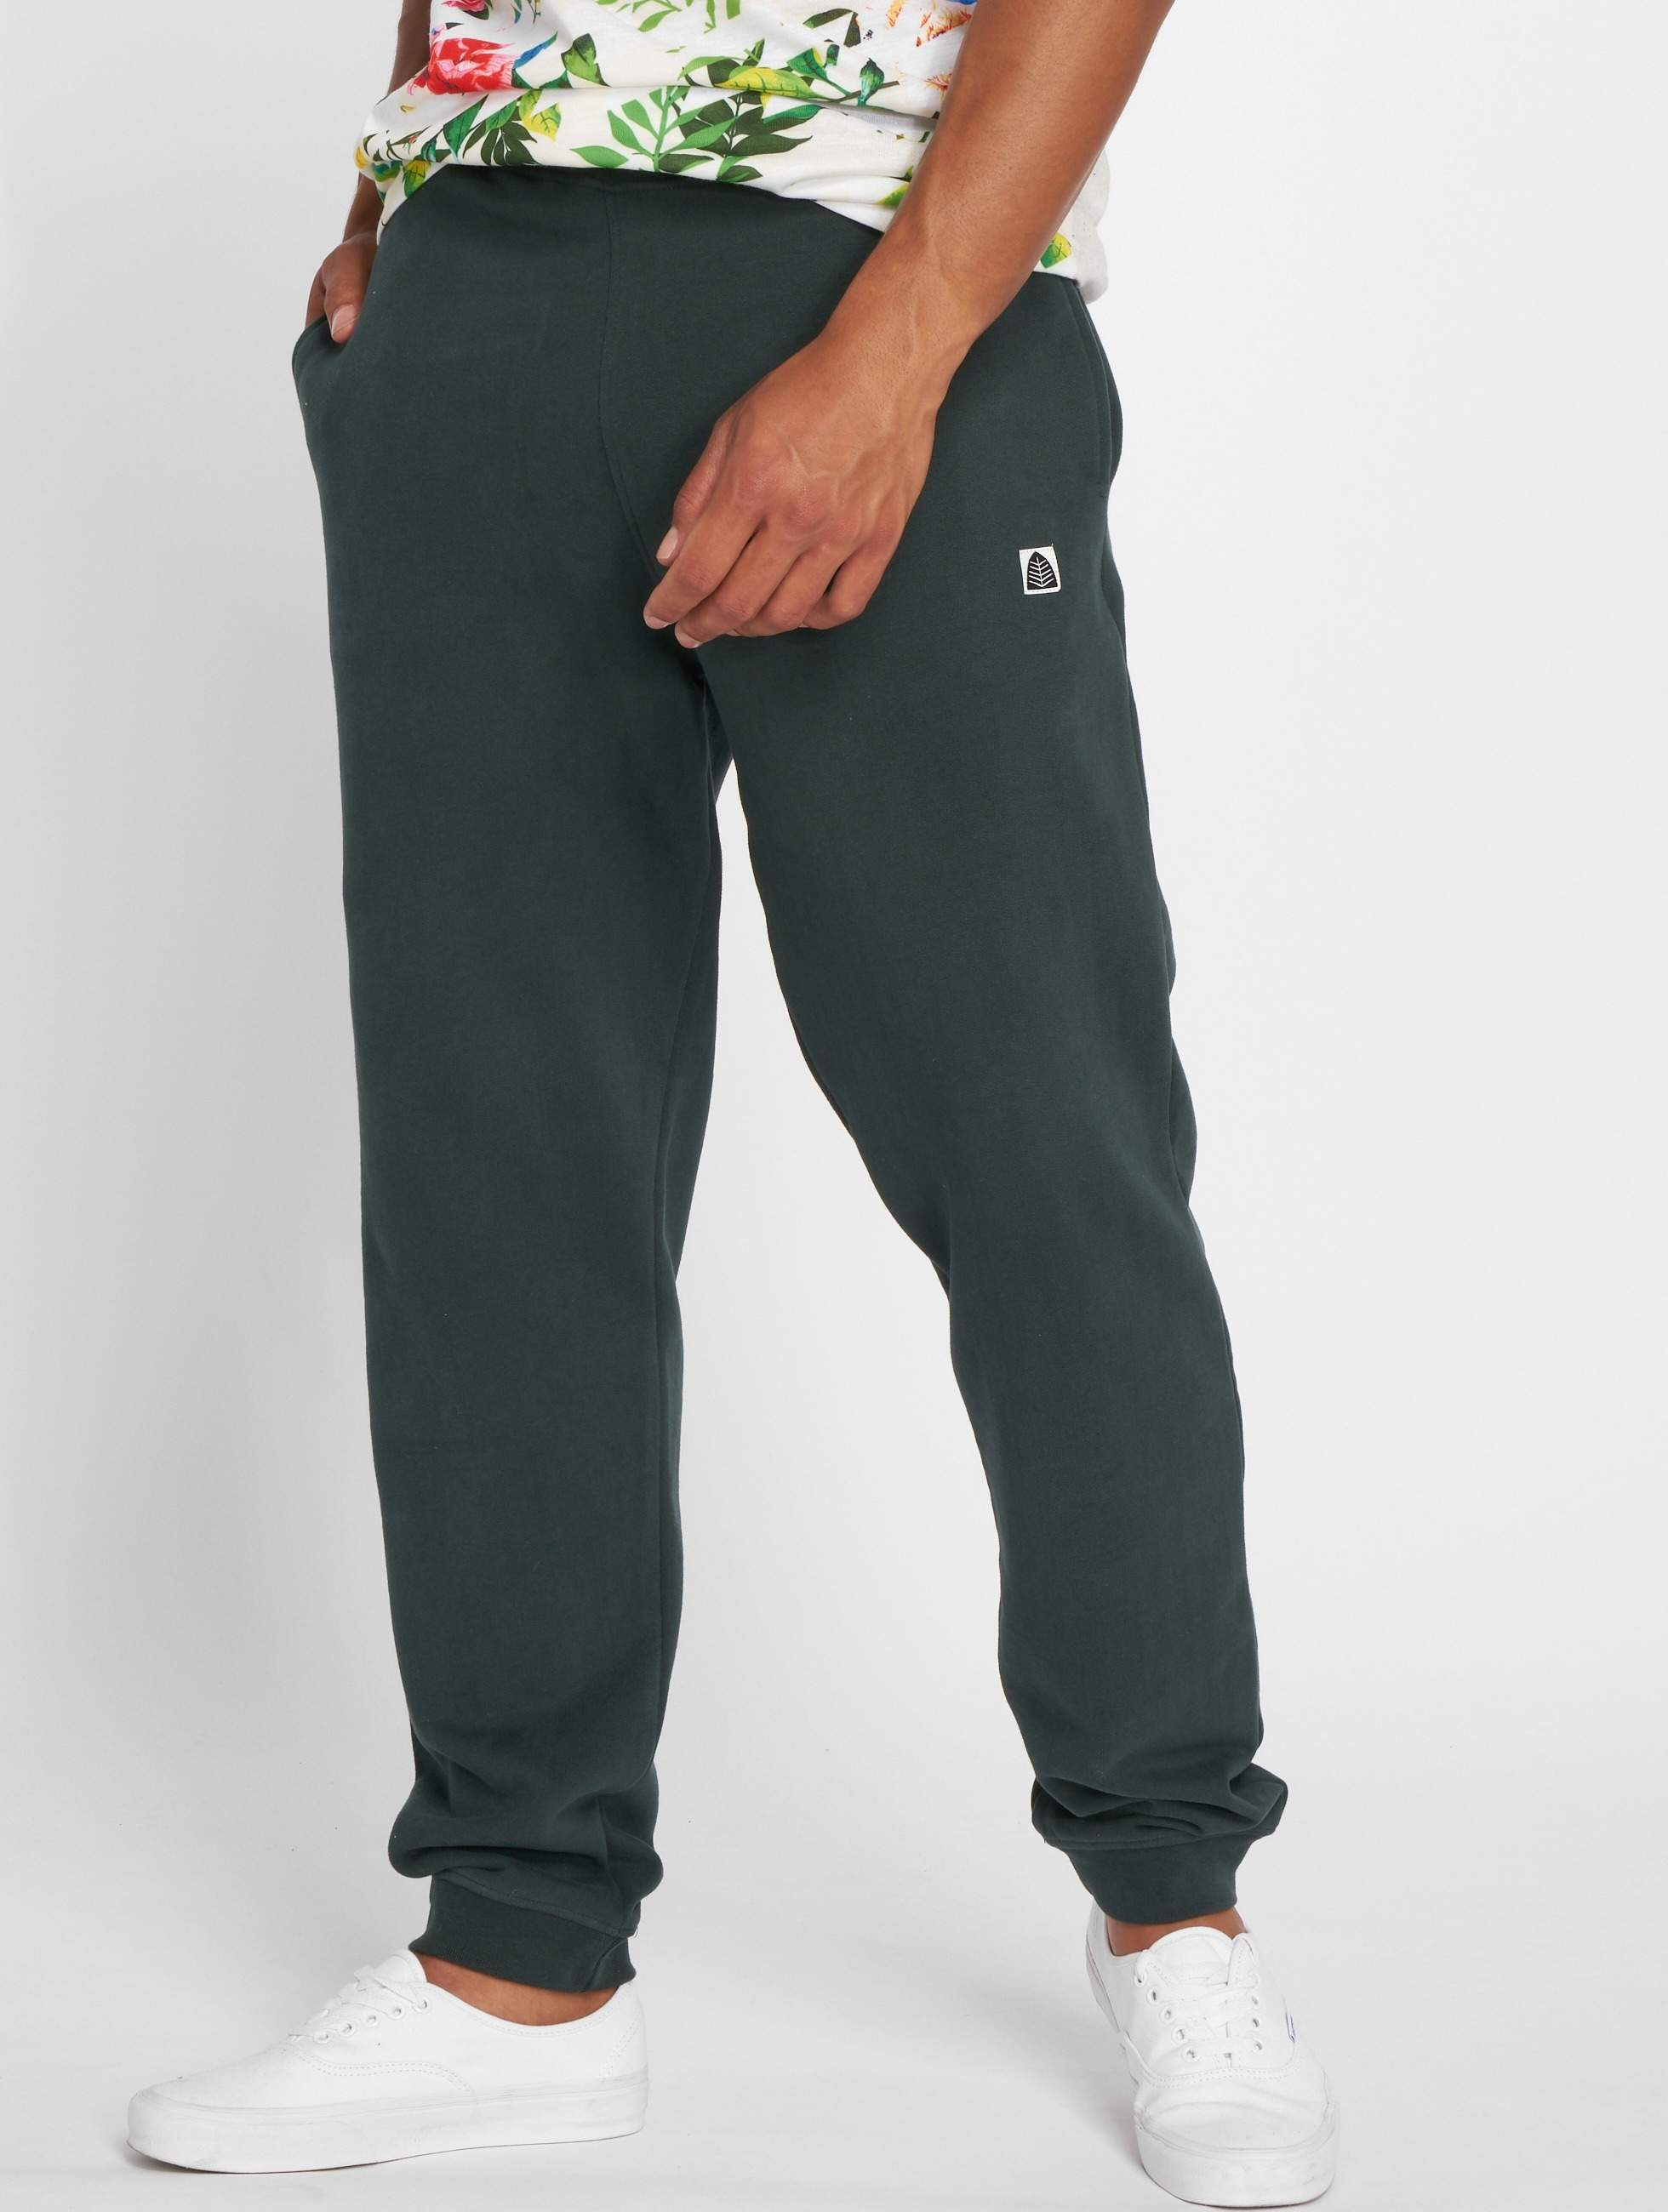 Just Rhyse / Sweat Pant Carrasco in green S